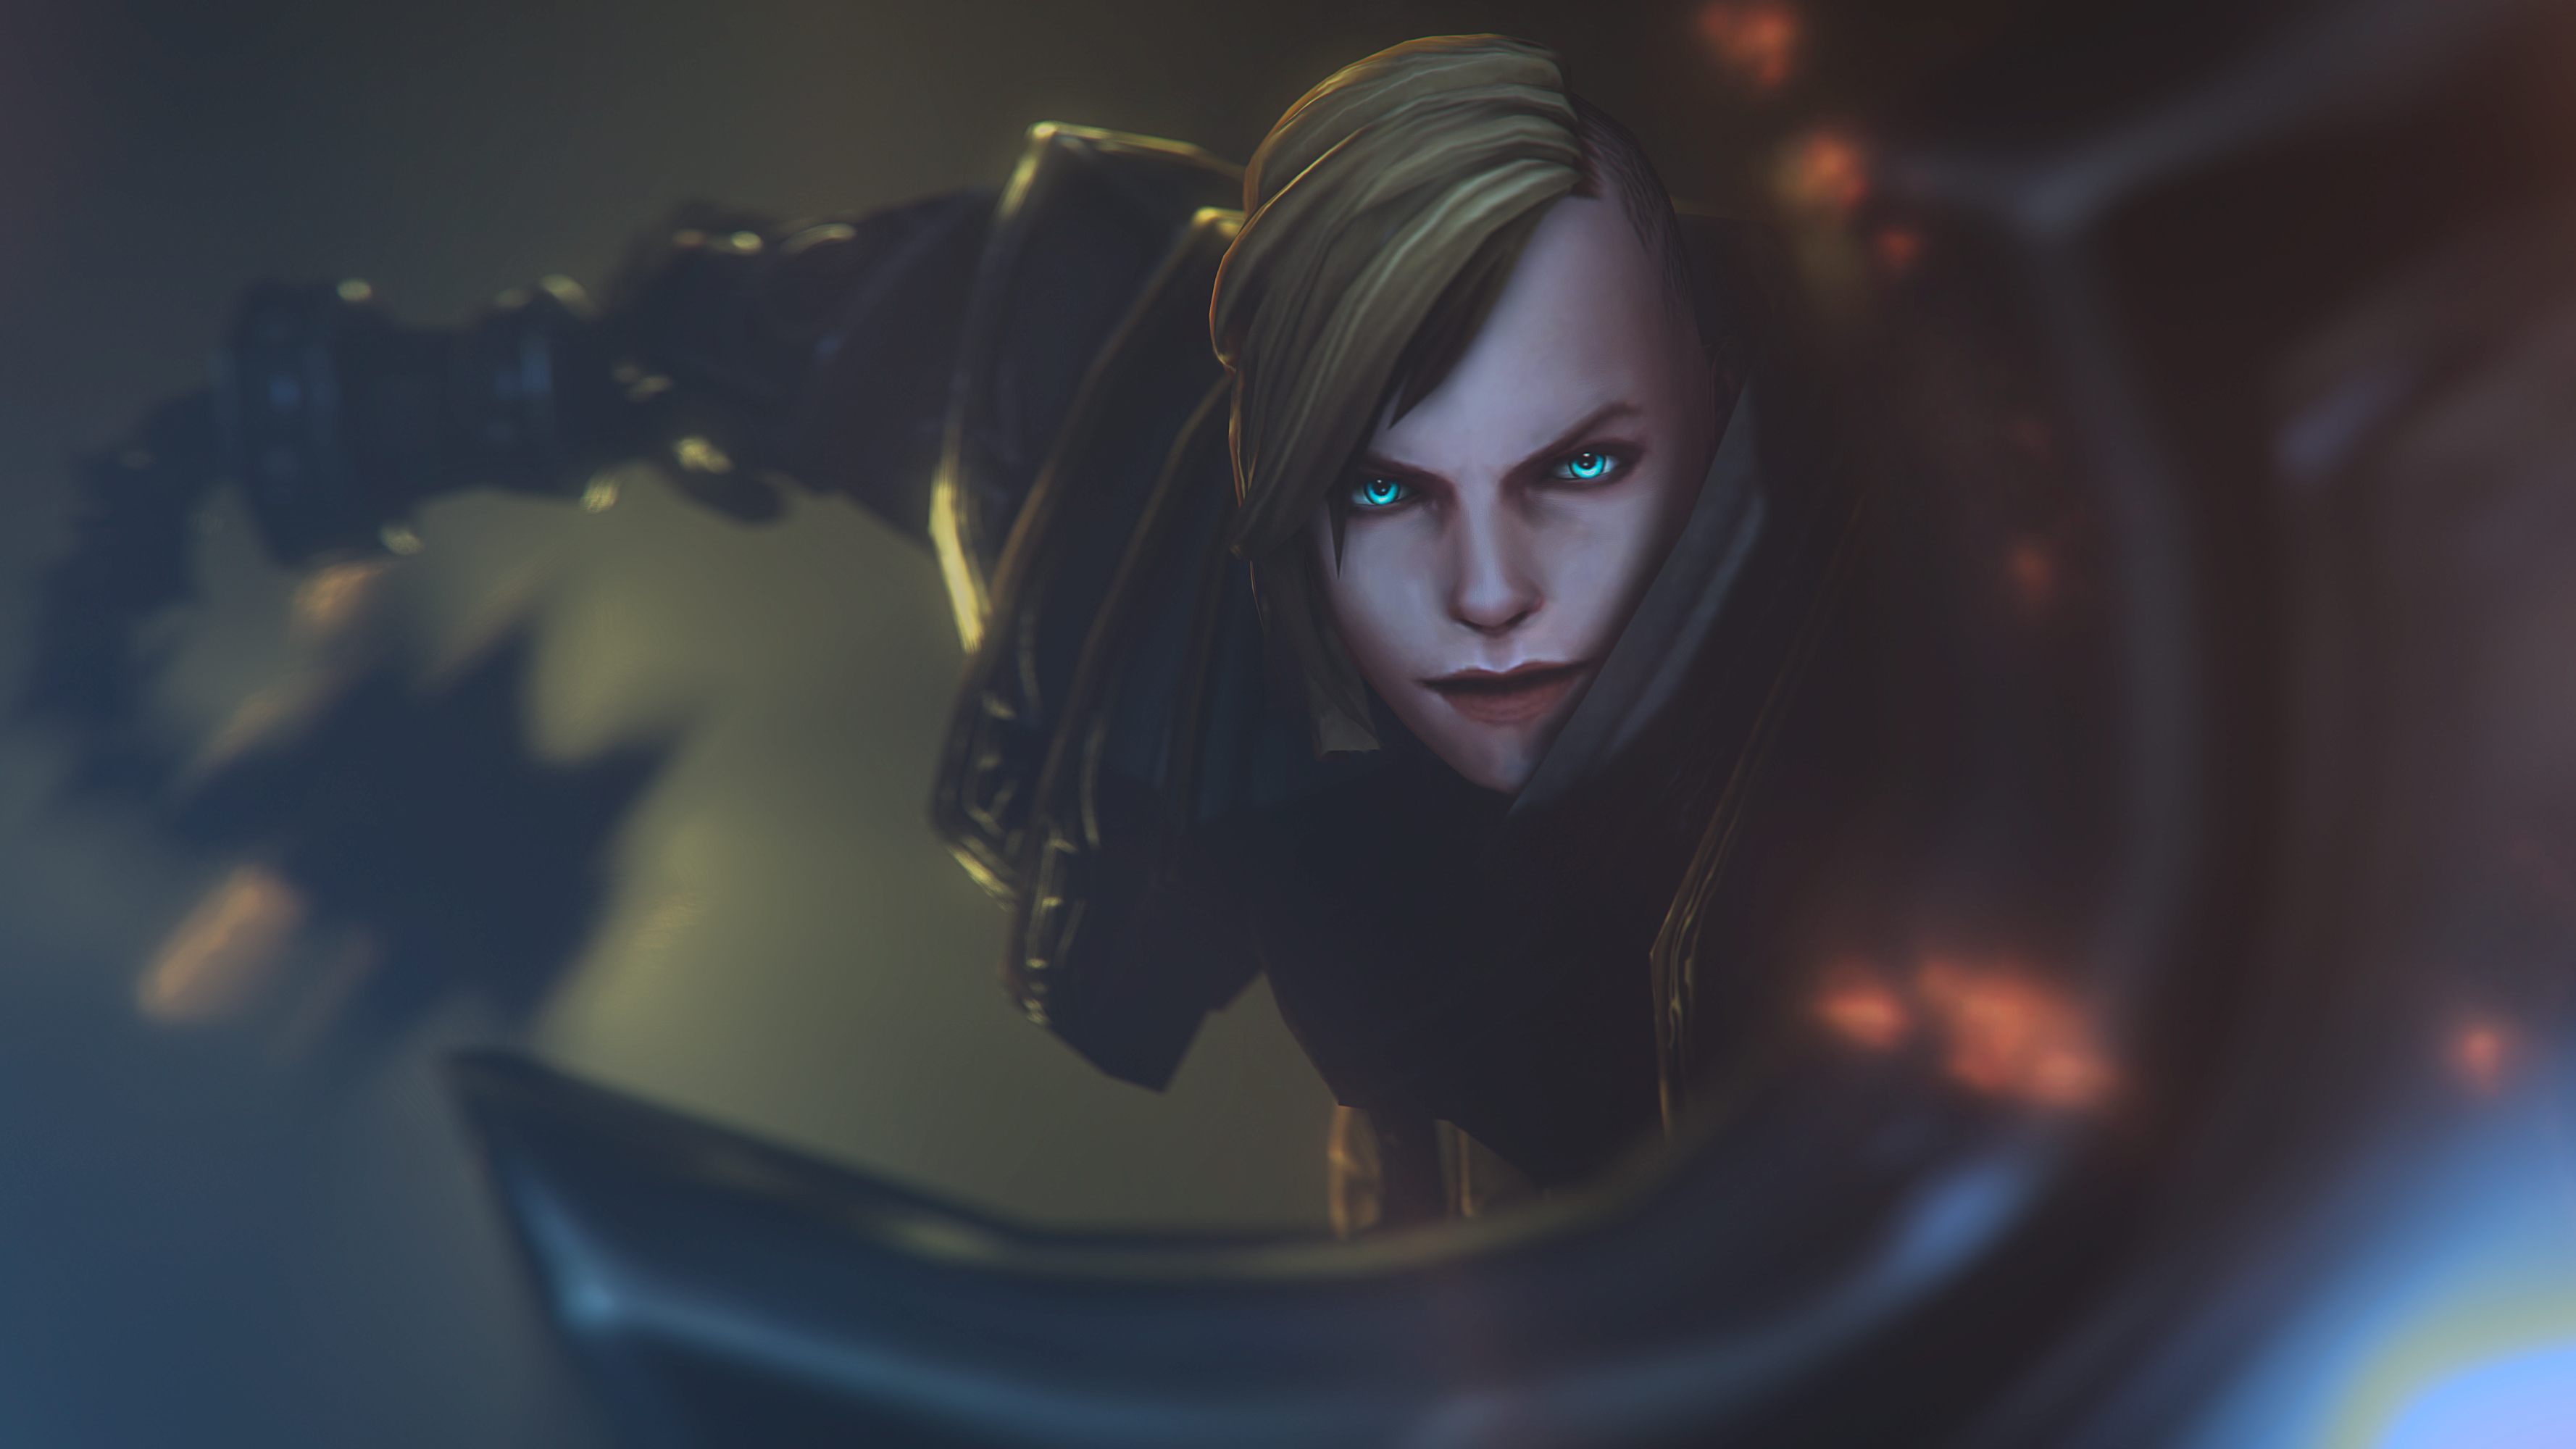 Johanna Heroes Of The Storm By Demiisak On Deviantart The best site dedicated to analyzing heroes of the storm replay files. johanna heroes of the storm by